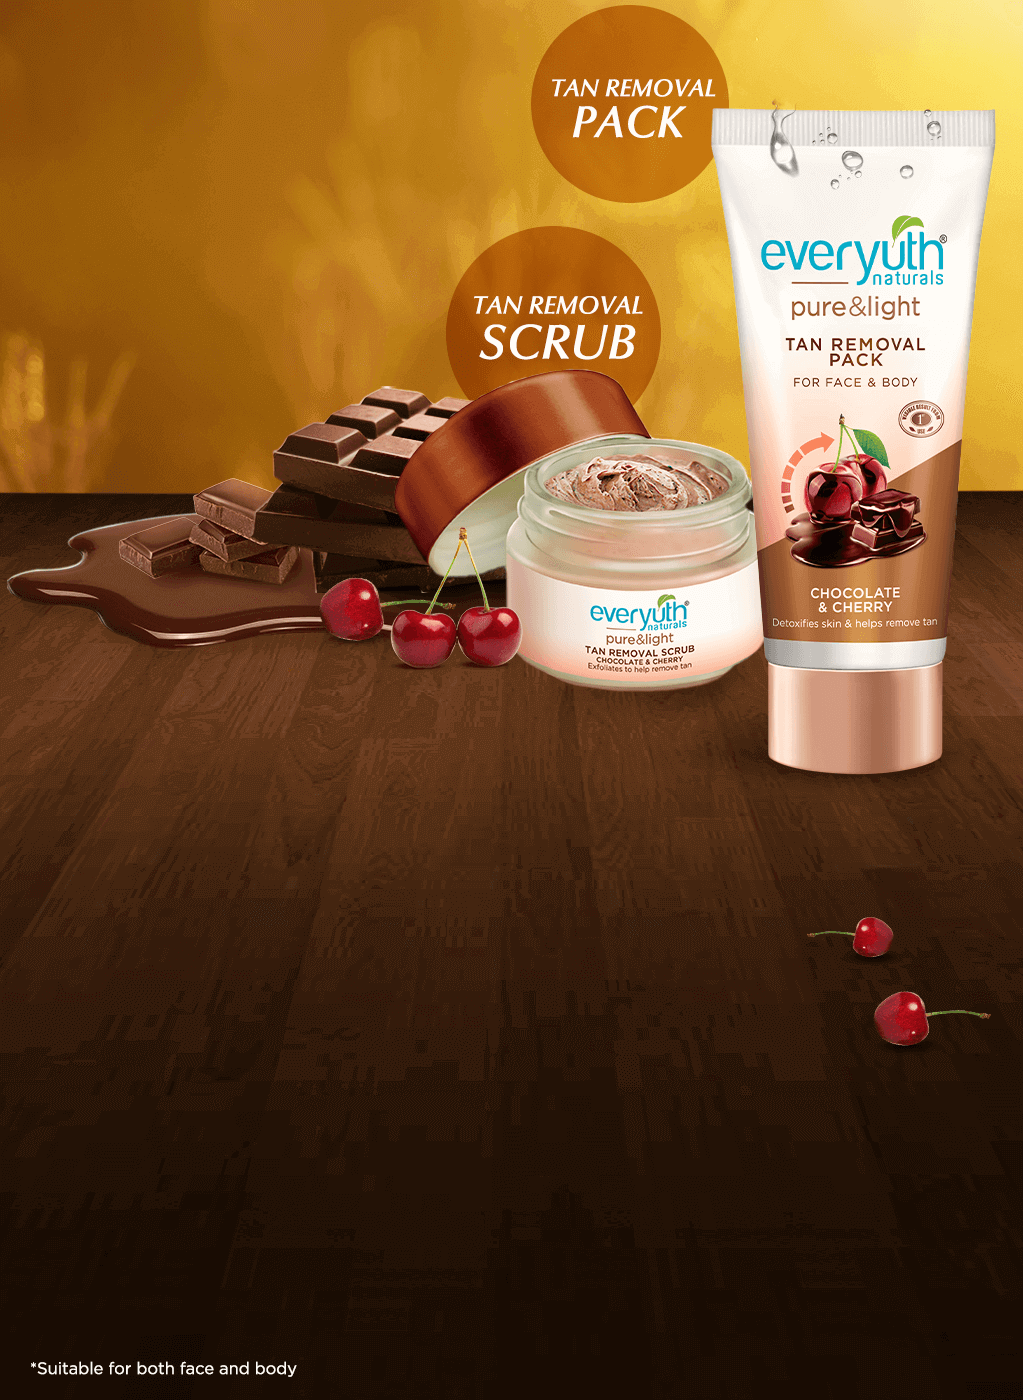 Everyuth Naturals - Tan Removal Scrub & Pack For Face & Body